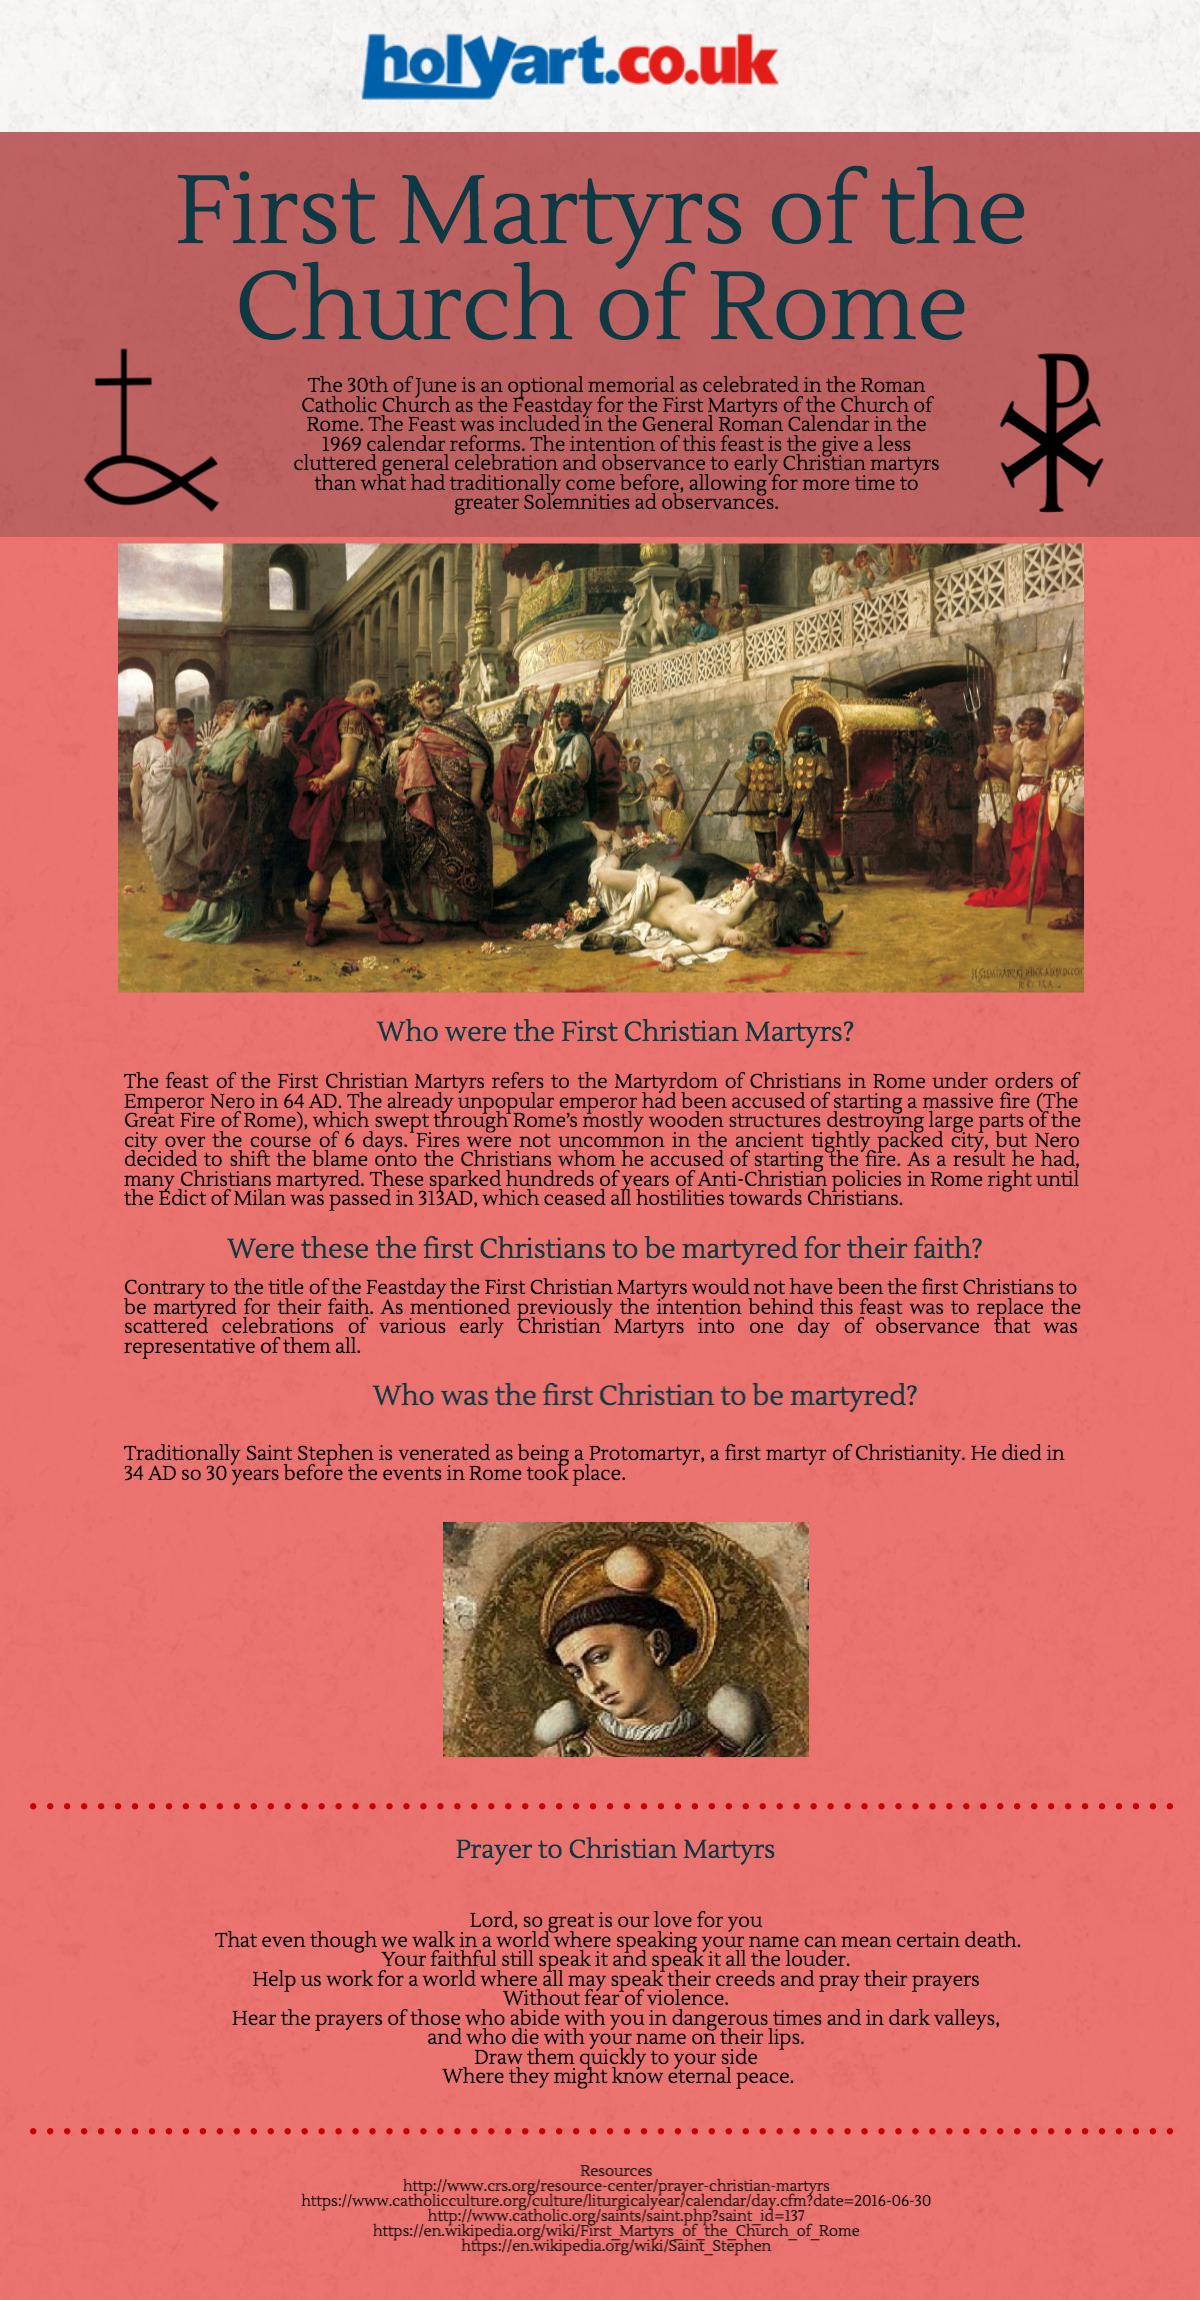 First Martyrs of the Church of Rome